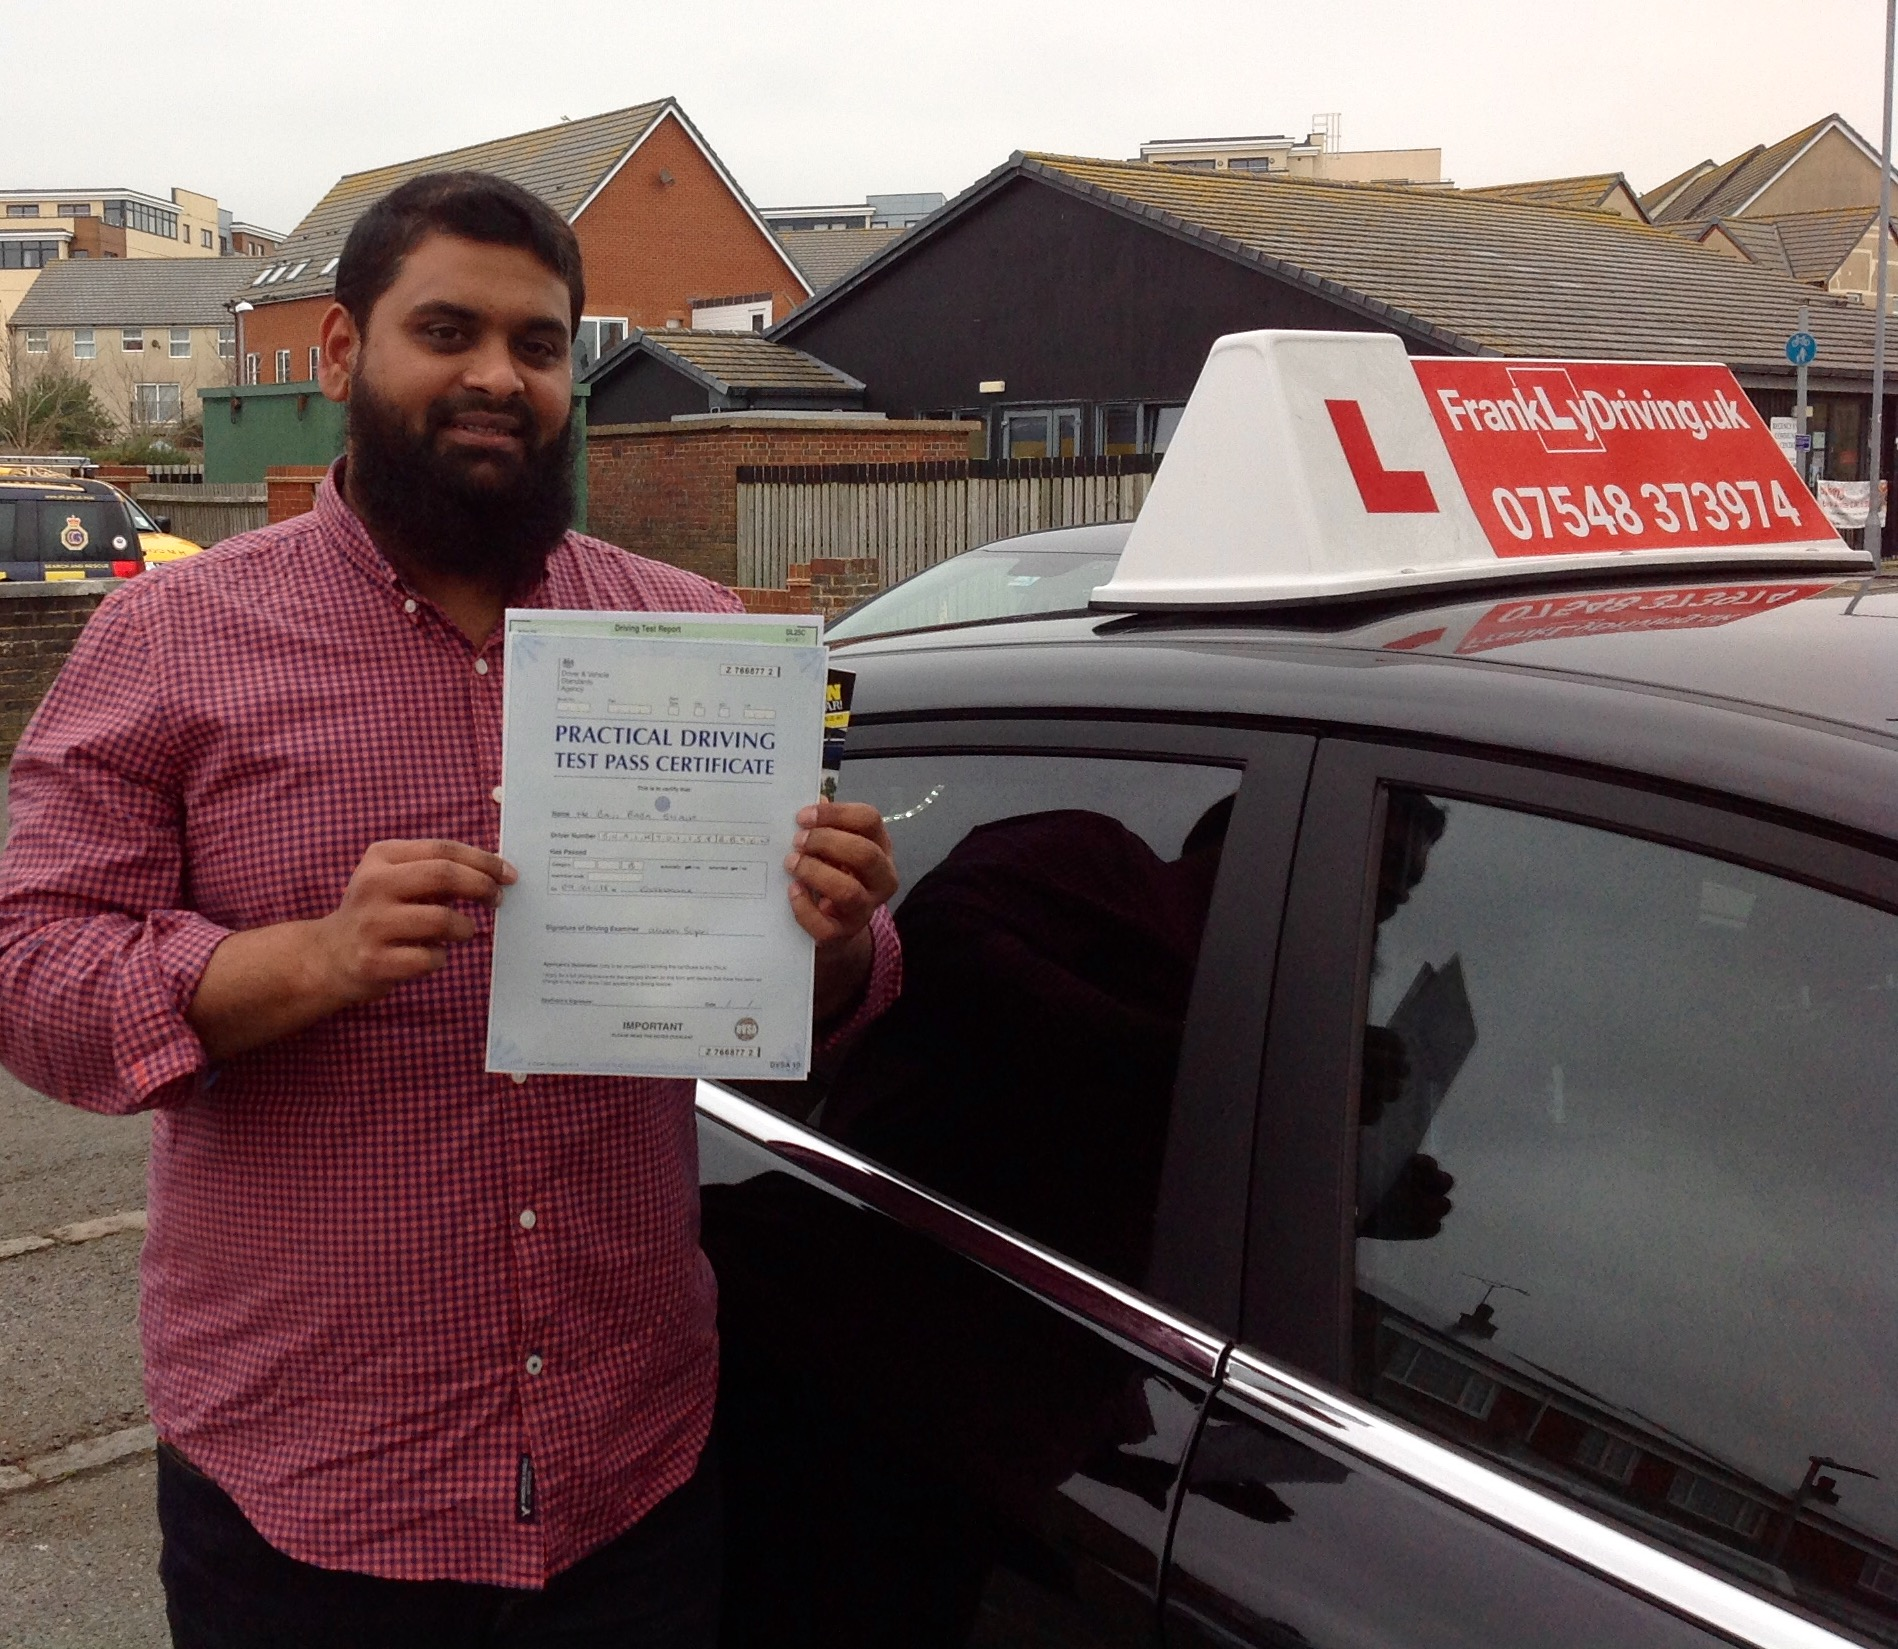 Congratulations Baji for passing your Driving Test